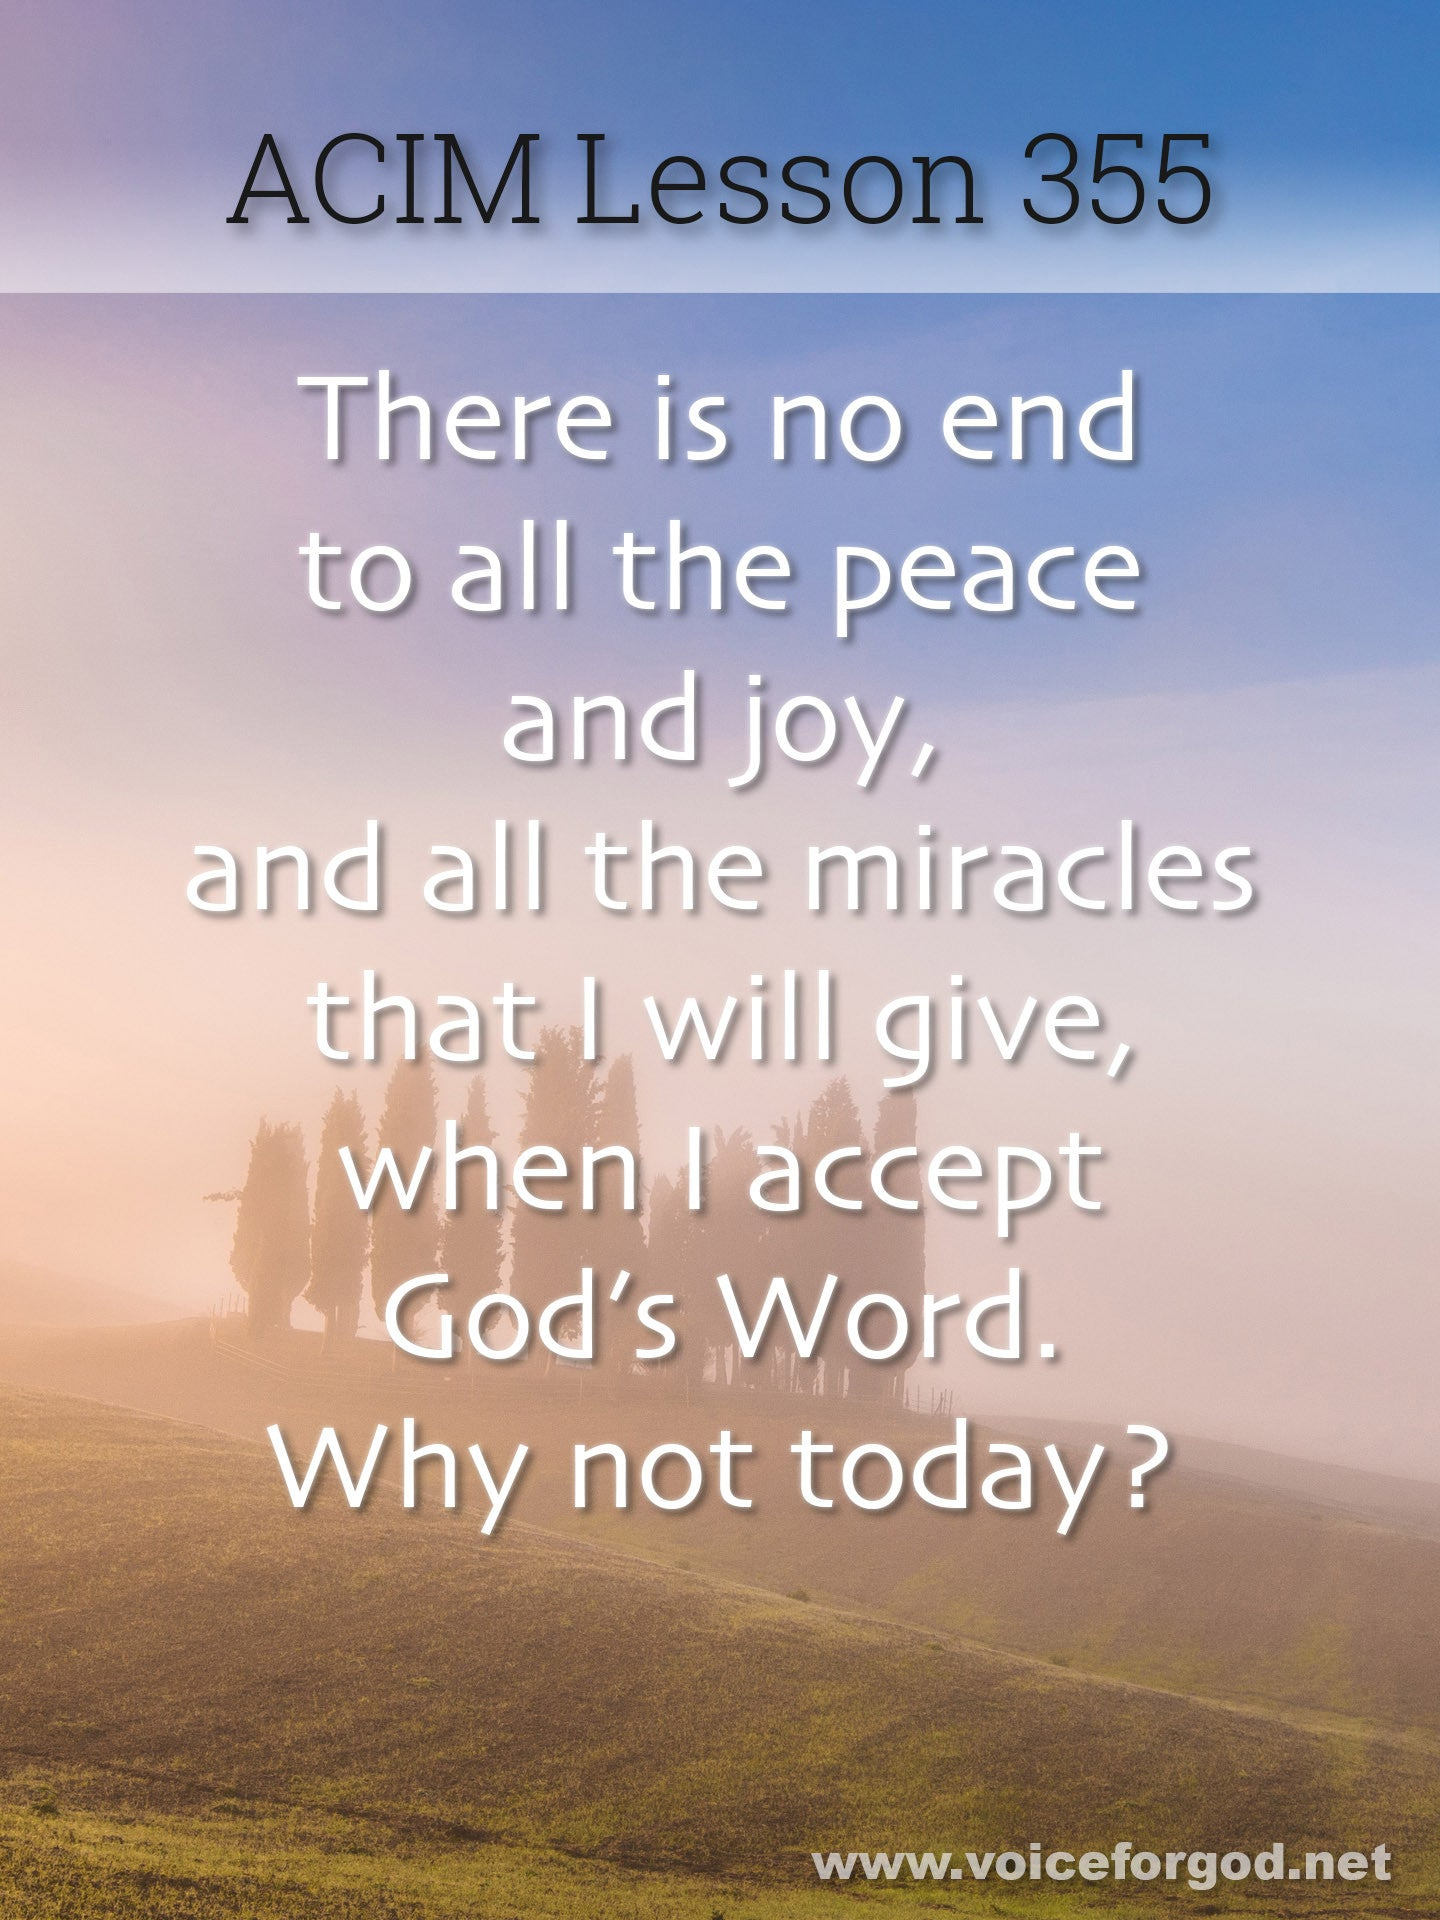 ACIM Lesson 355 - A Course in Miracles Workbook Lesson 355